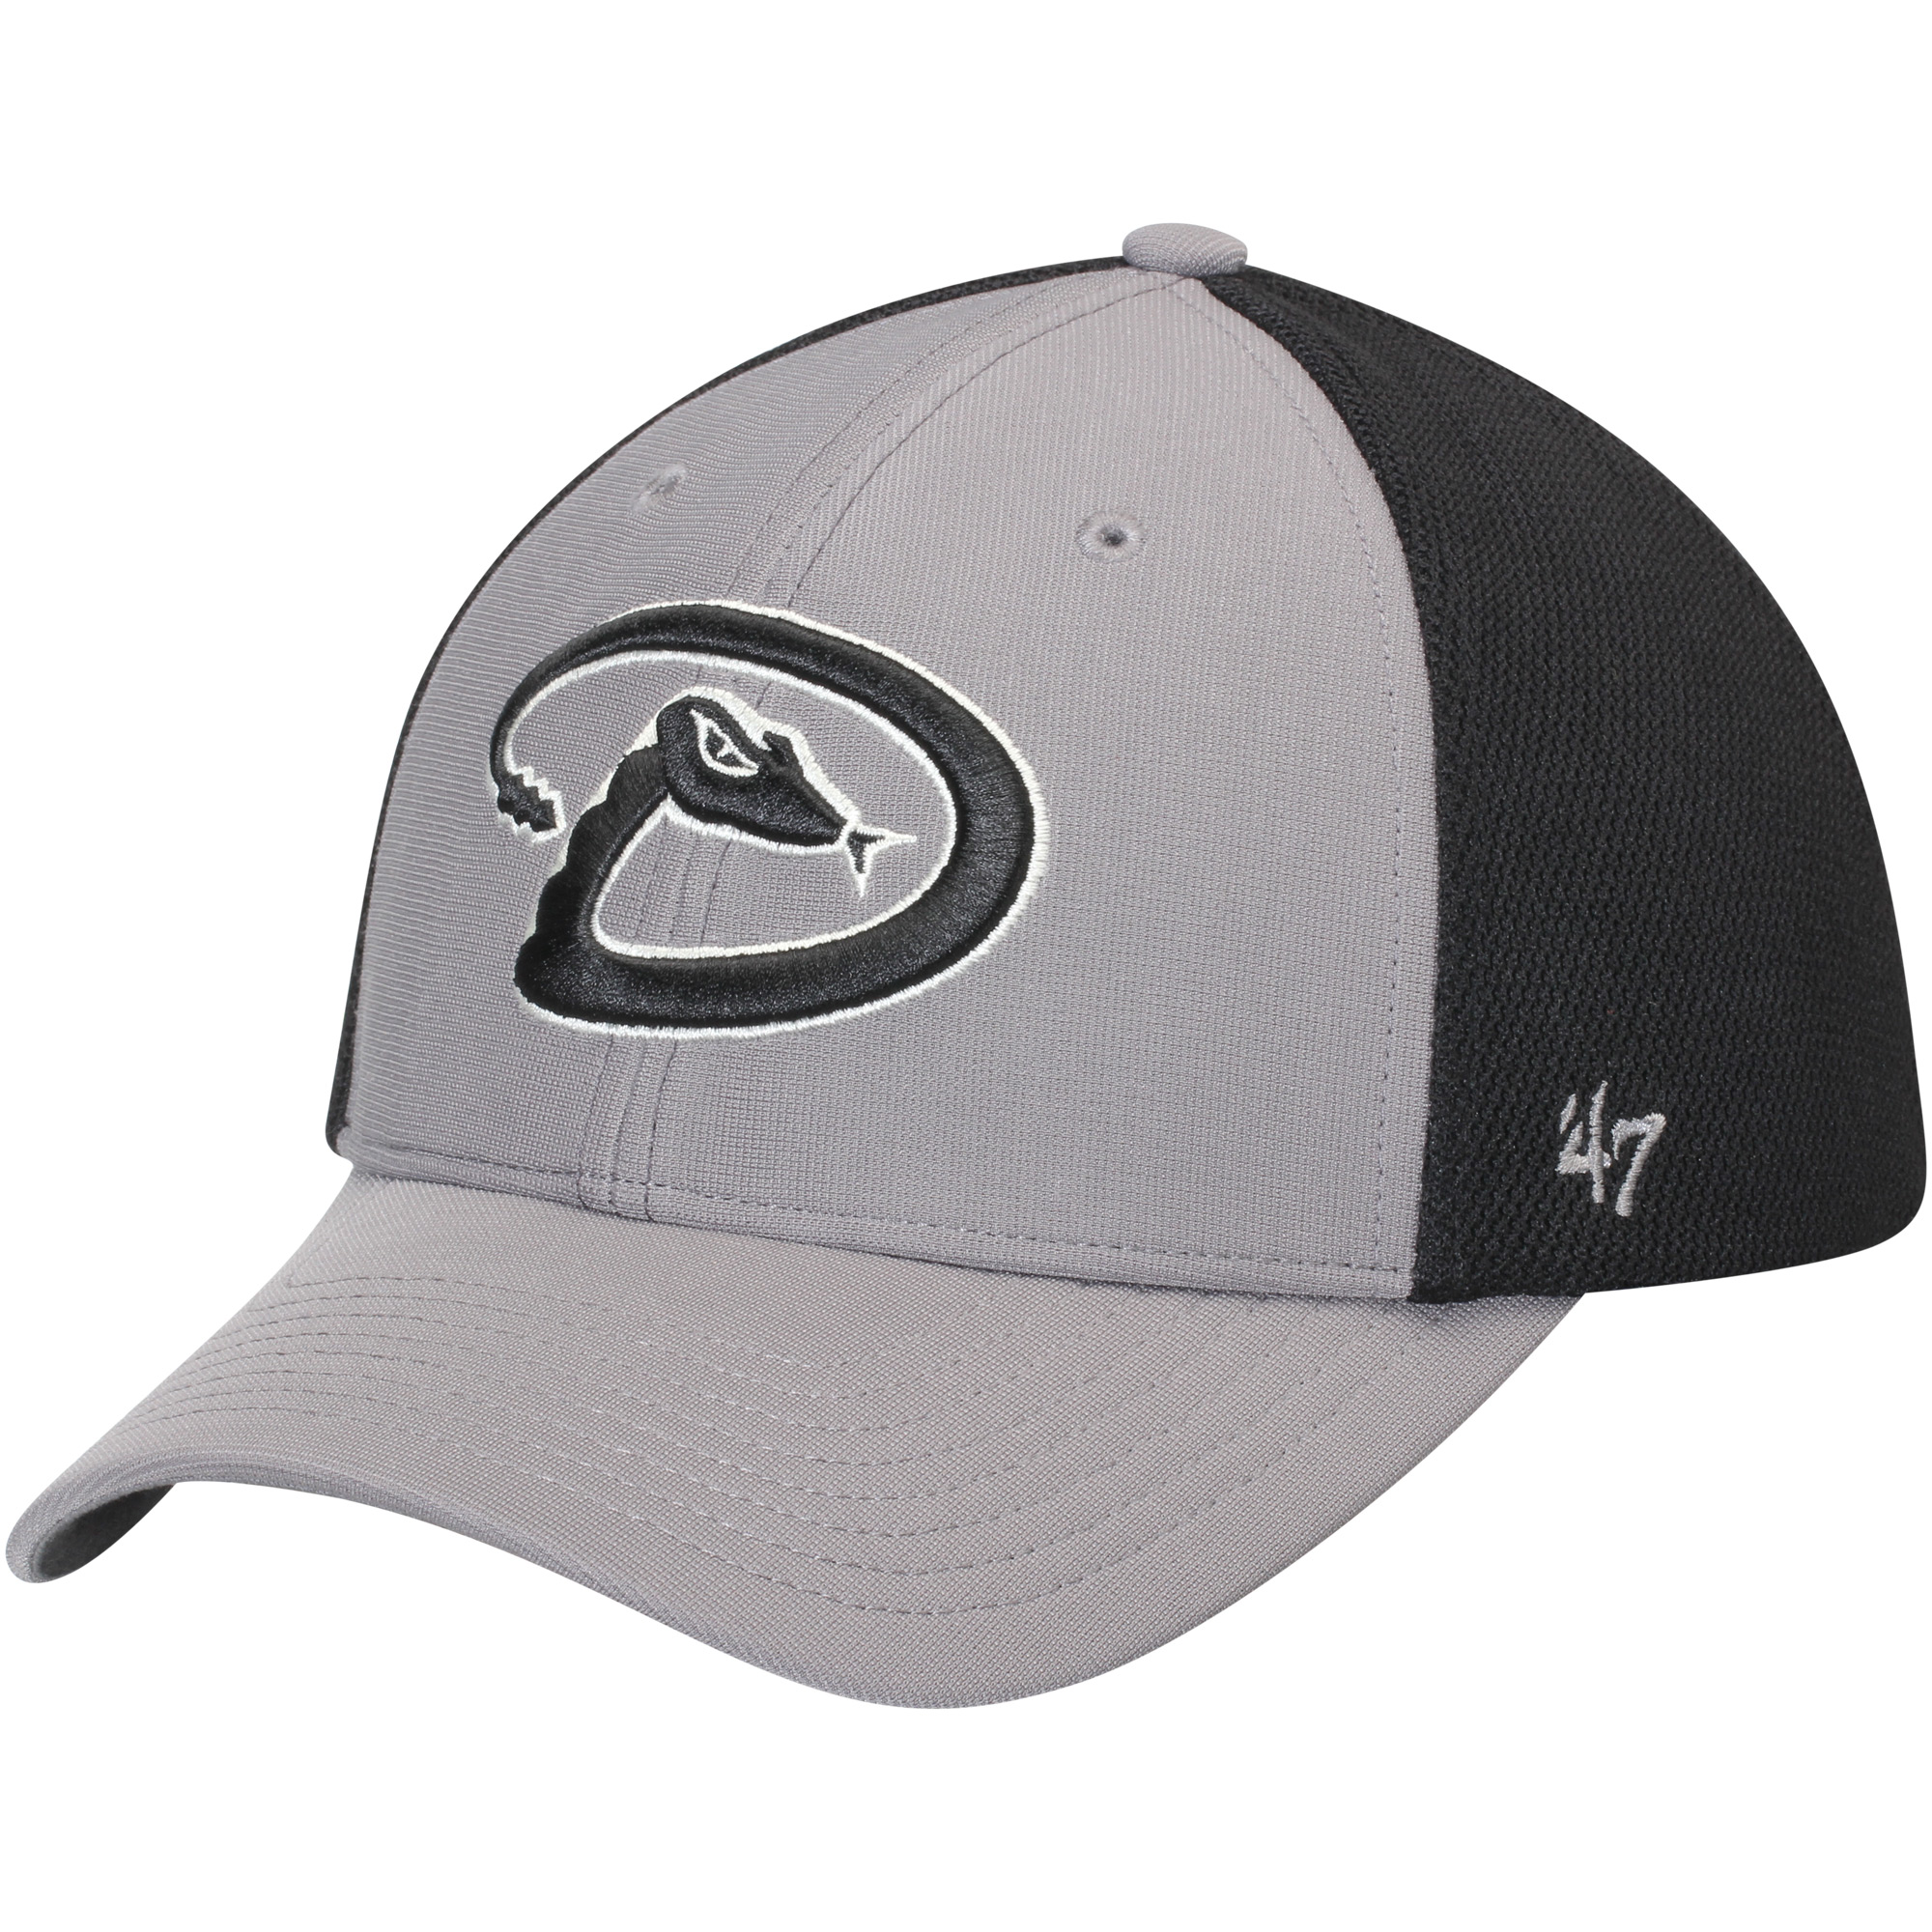 Arizona Diamondbacks '47 Talis MVP Adjustable Hat - Dark Gray/Black - OSFA